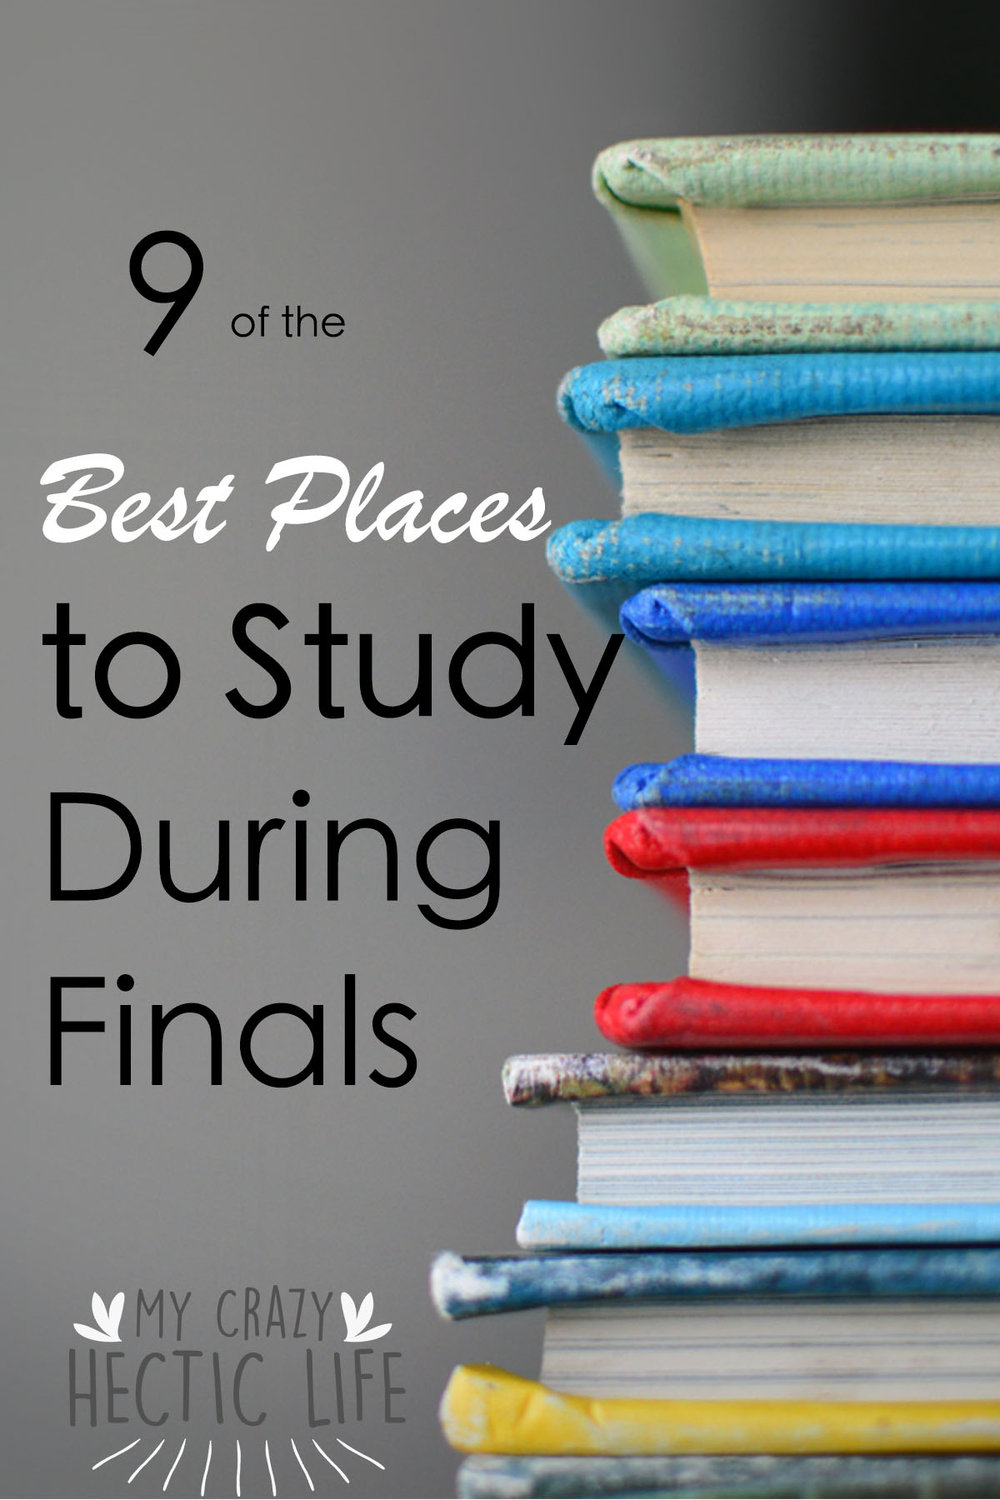 9 Best Places to Study.jpg